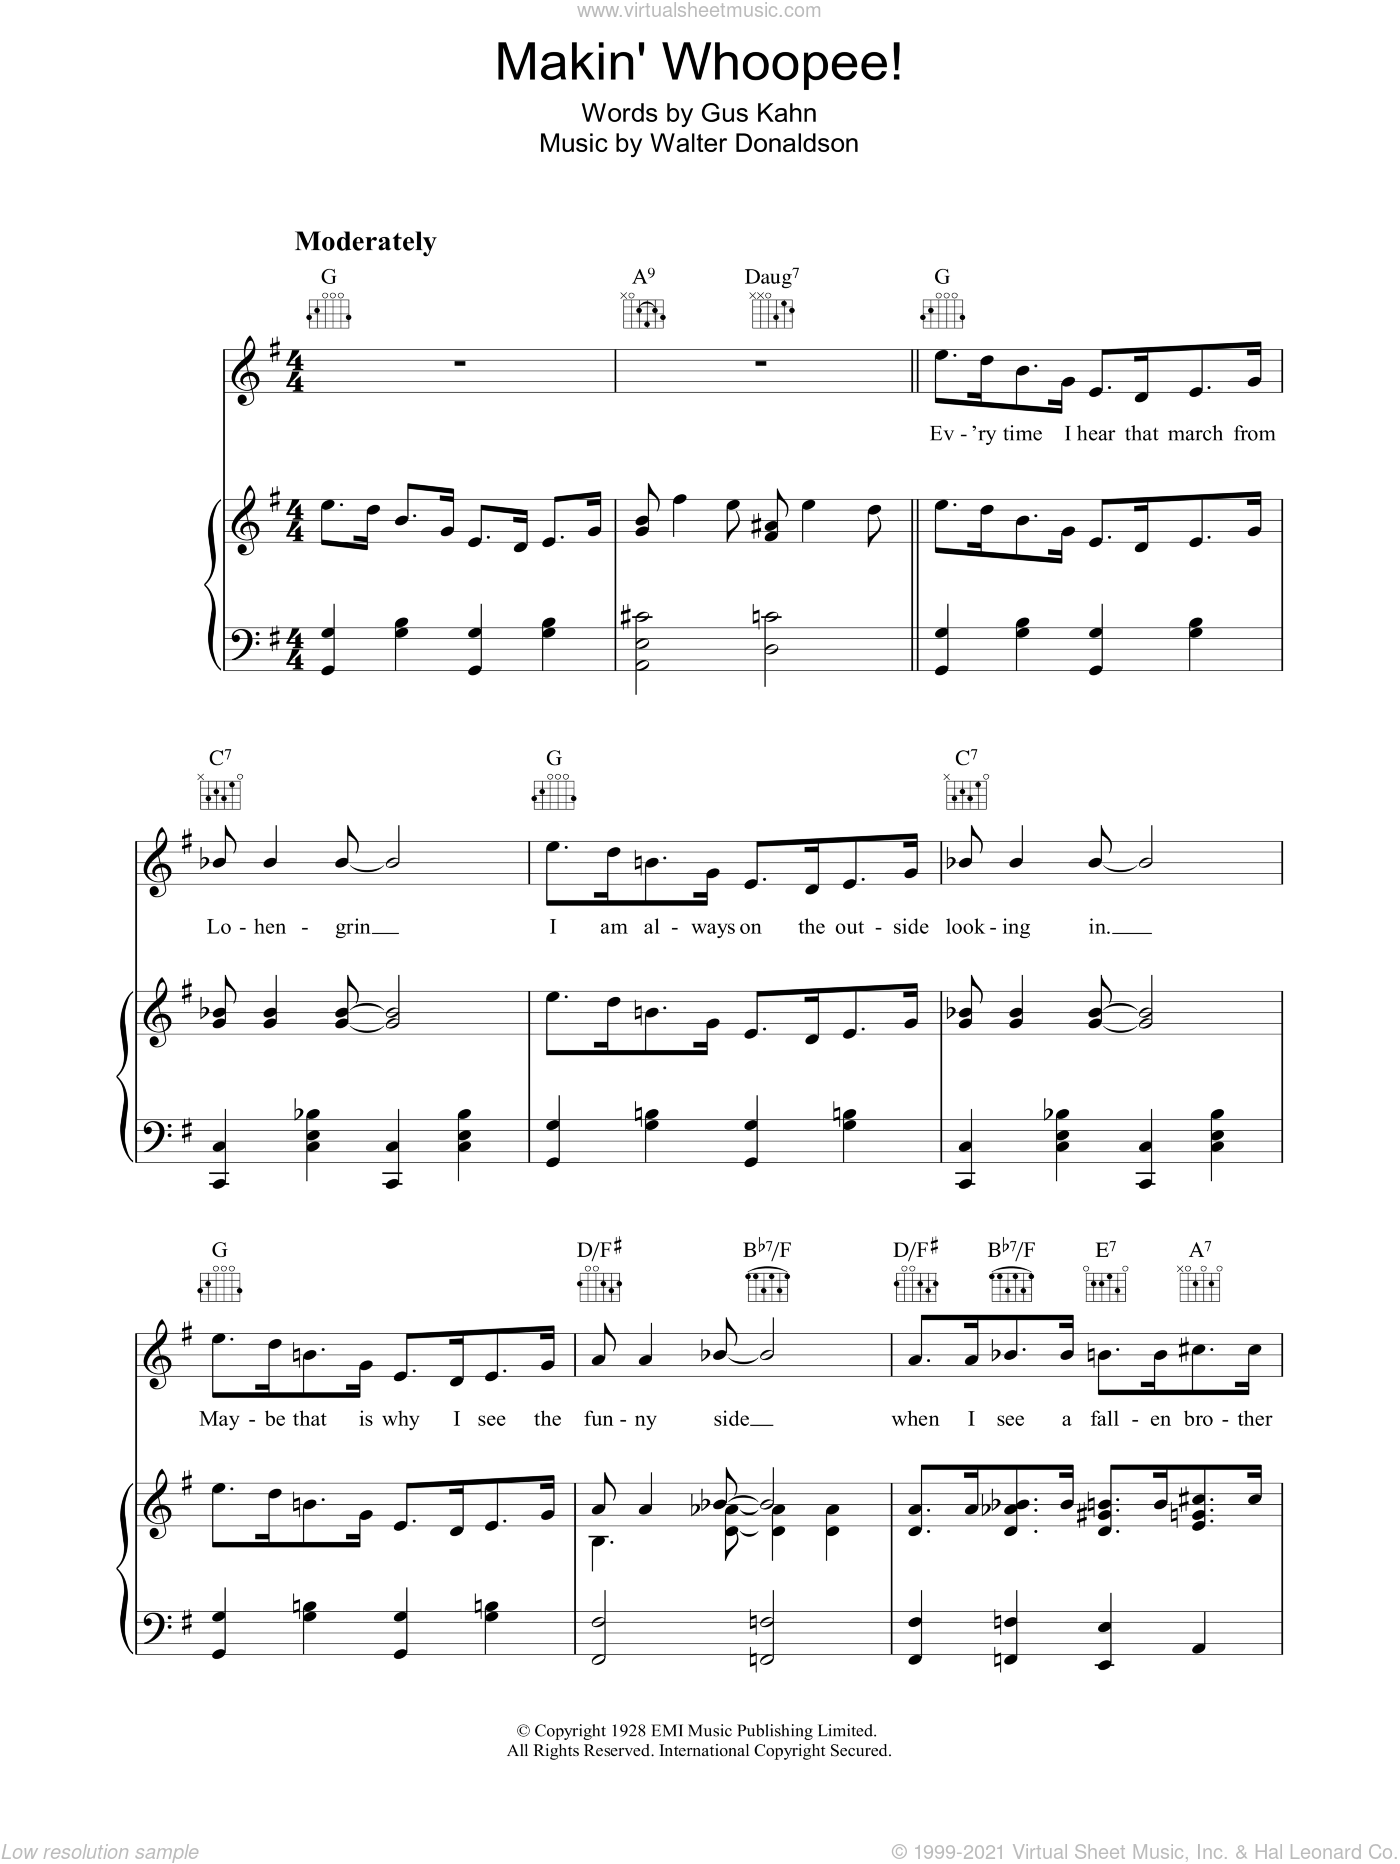 Makin' Whoopee sheet music for voice, piano or guitar by Walter Donaldson